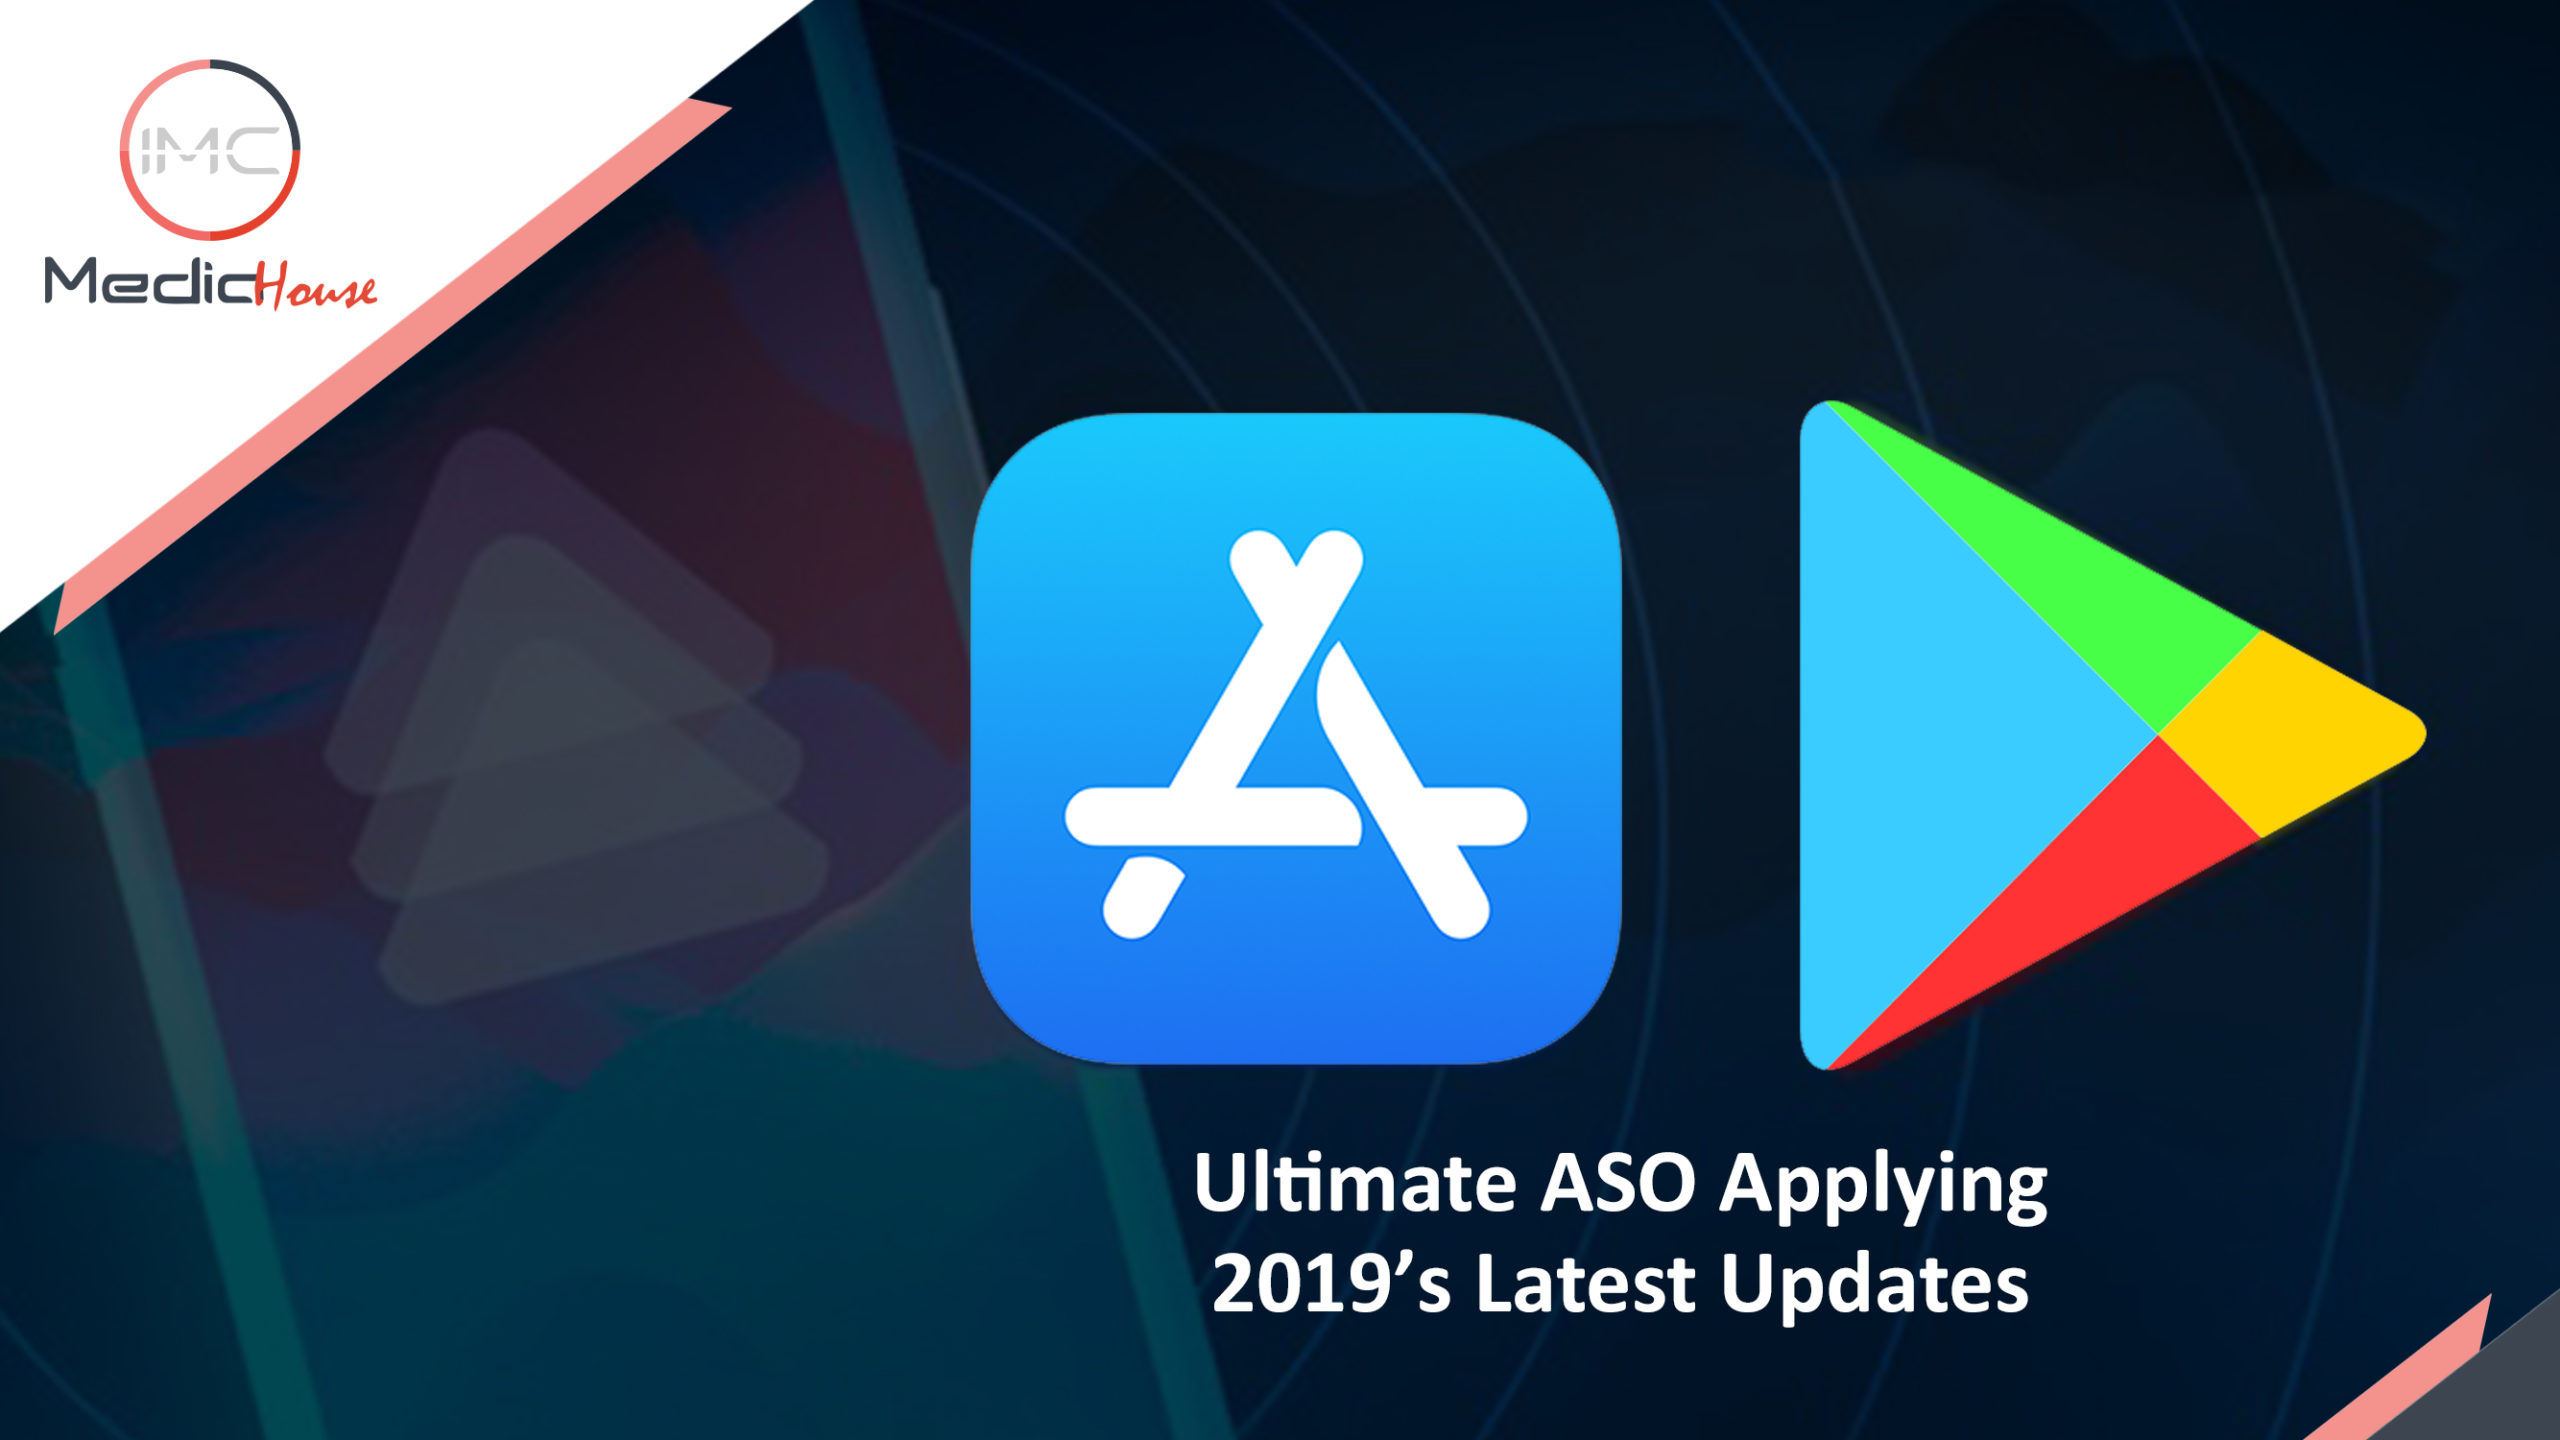 Ultimate ASO Applying/2019's Latest Updates